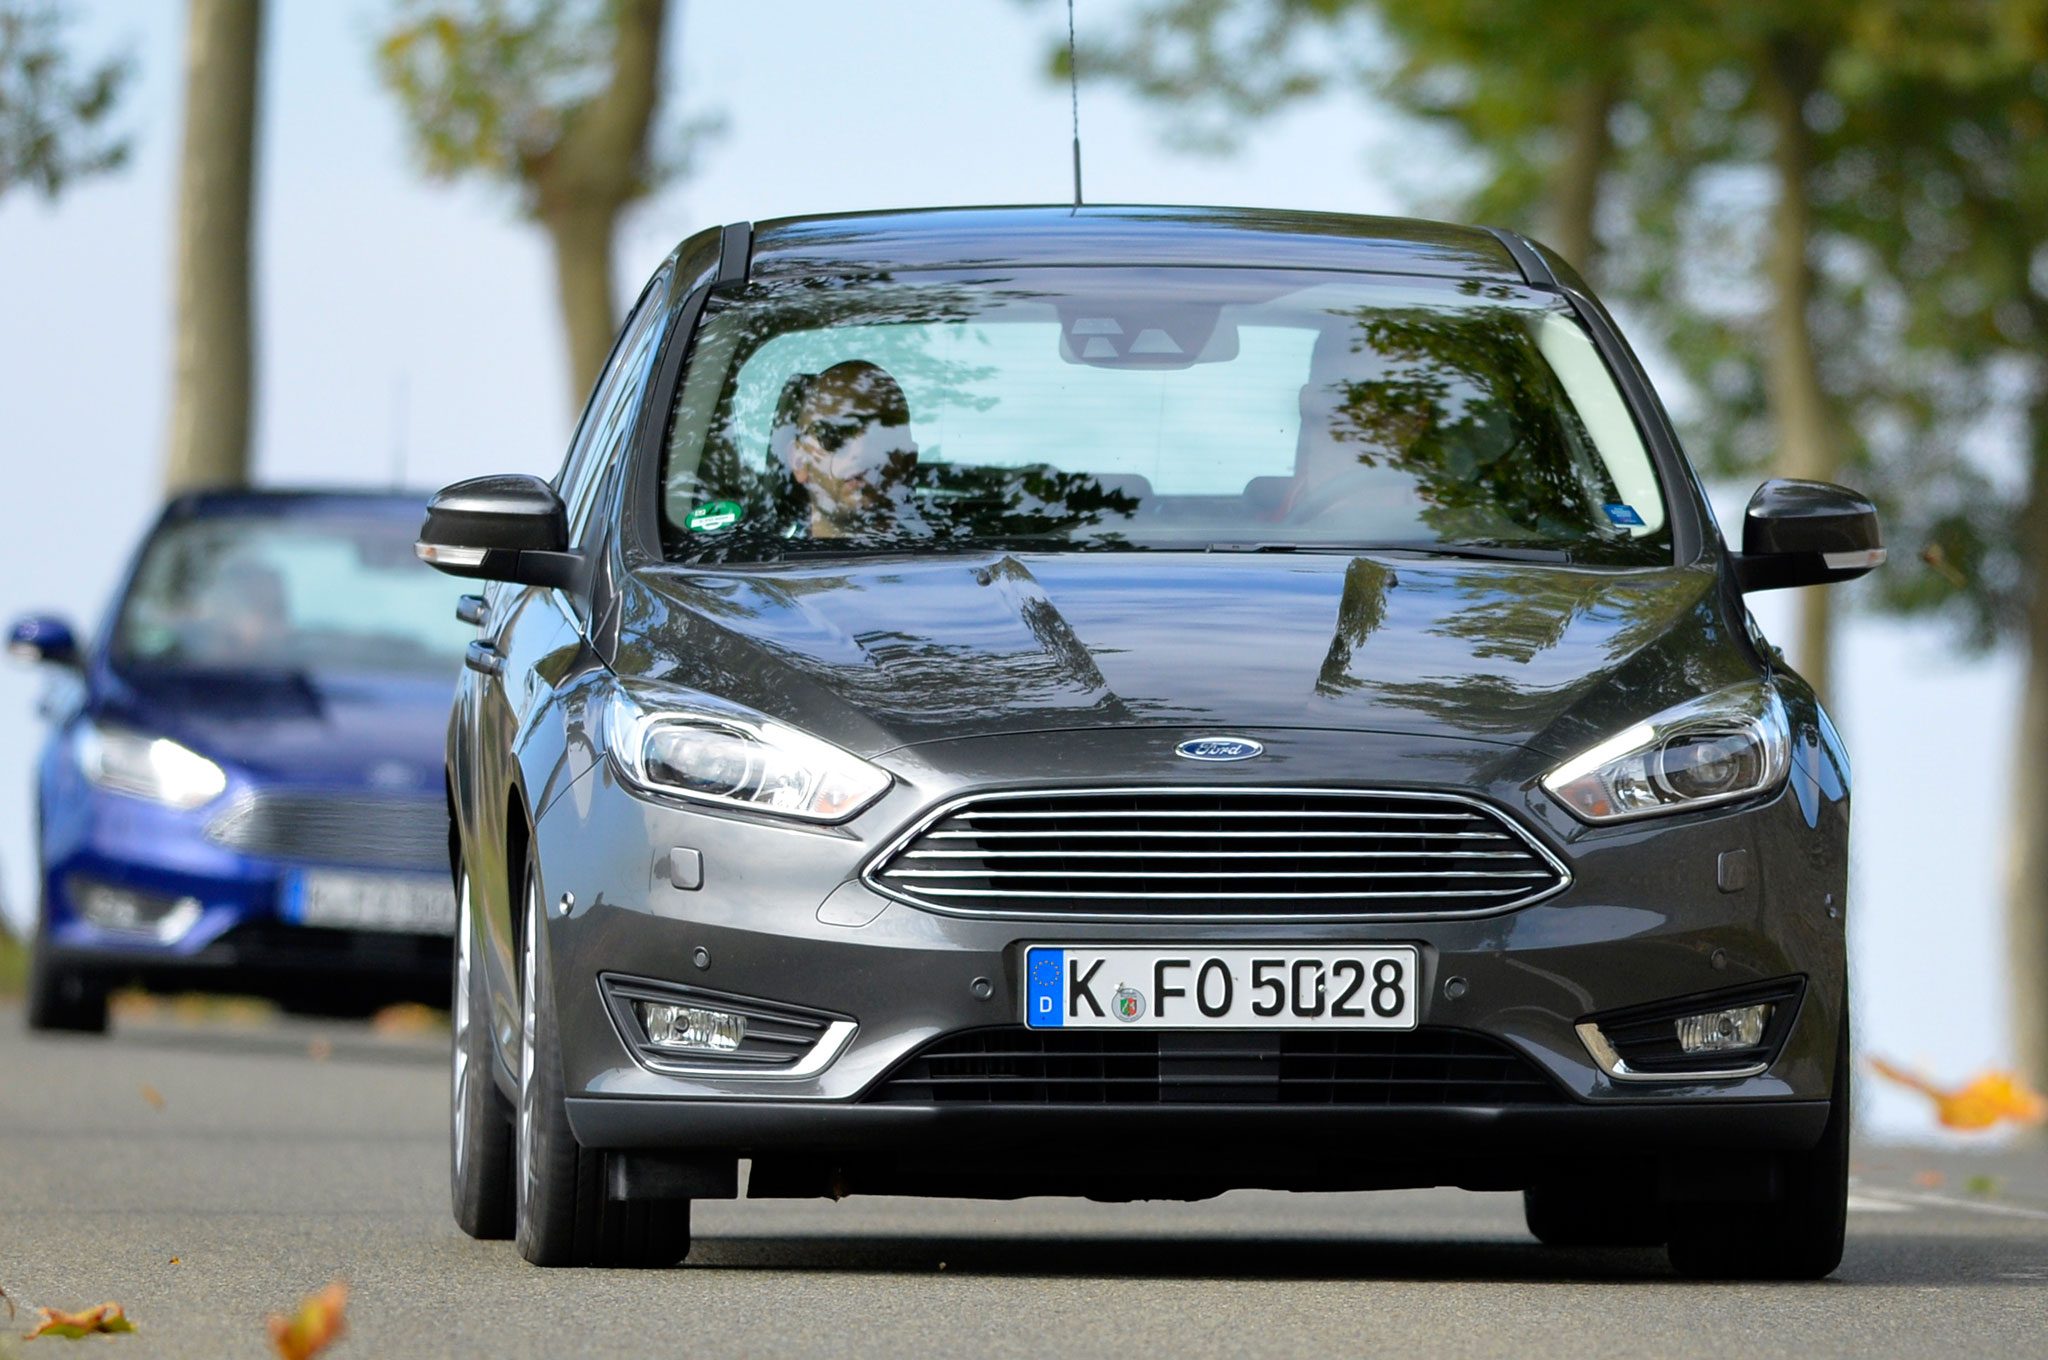 2015 Ford Focus 10 EcoBoost EuropeanSpec Review